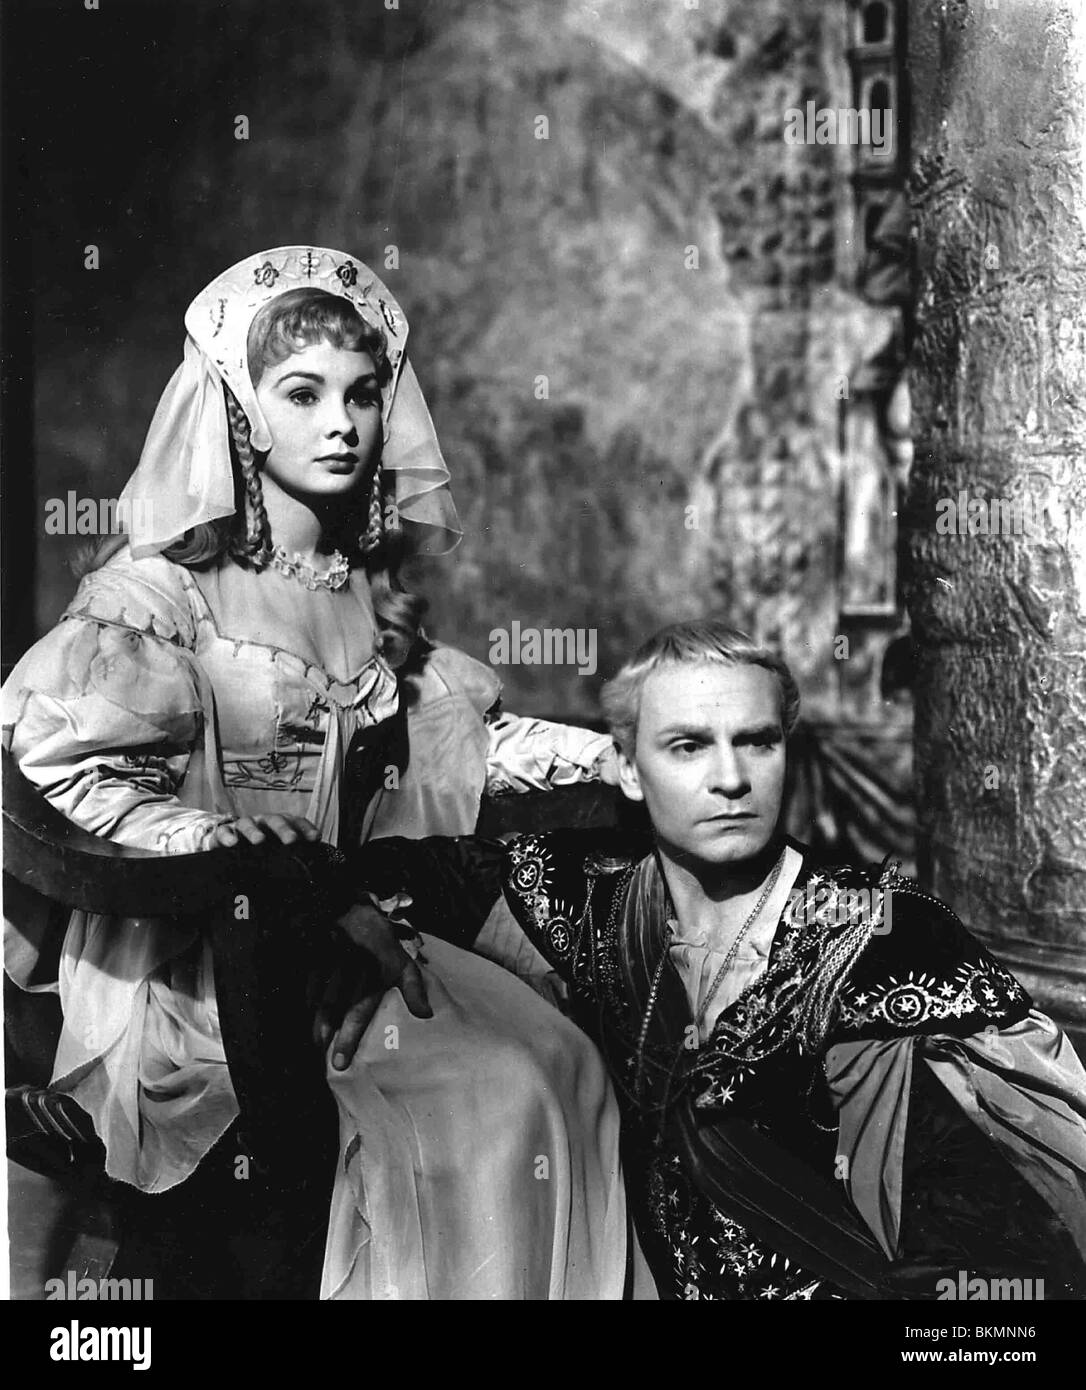 HAMLET (1948) JEAN SIMMONS, LAURENCE OLIVIER HMLT 006P Stock Photo